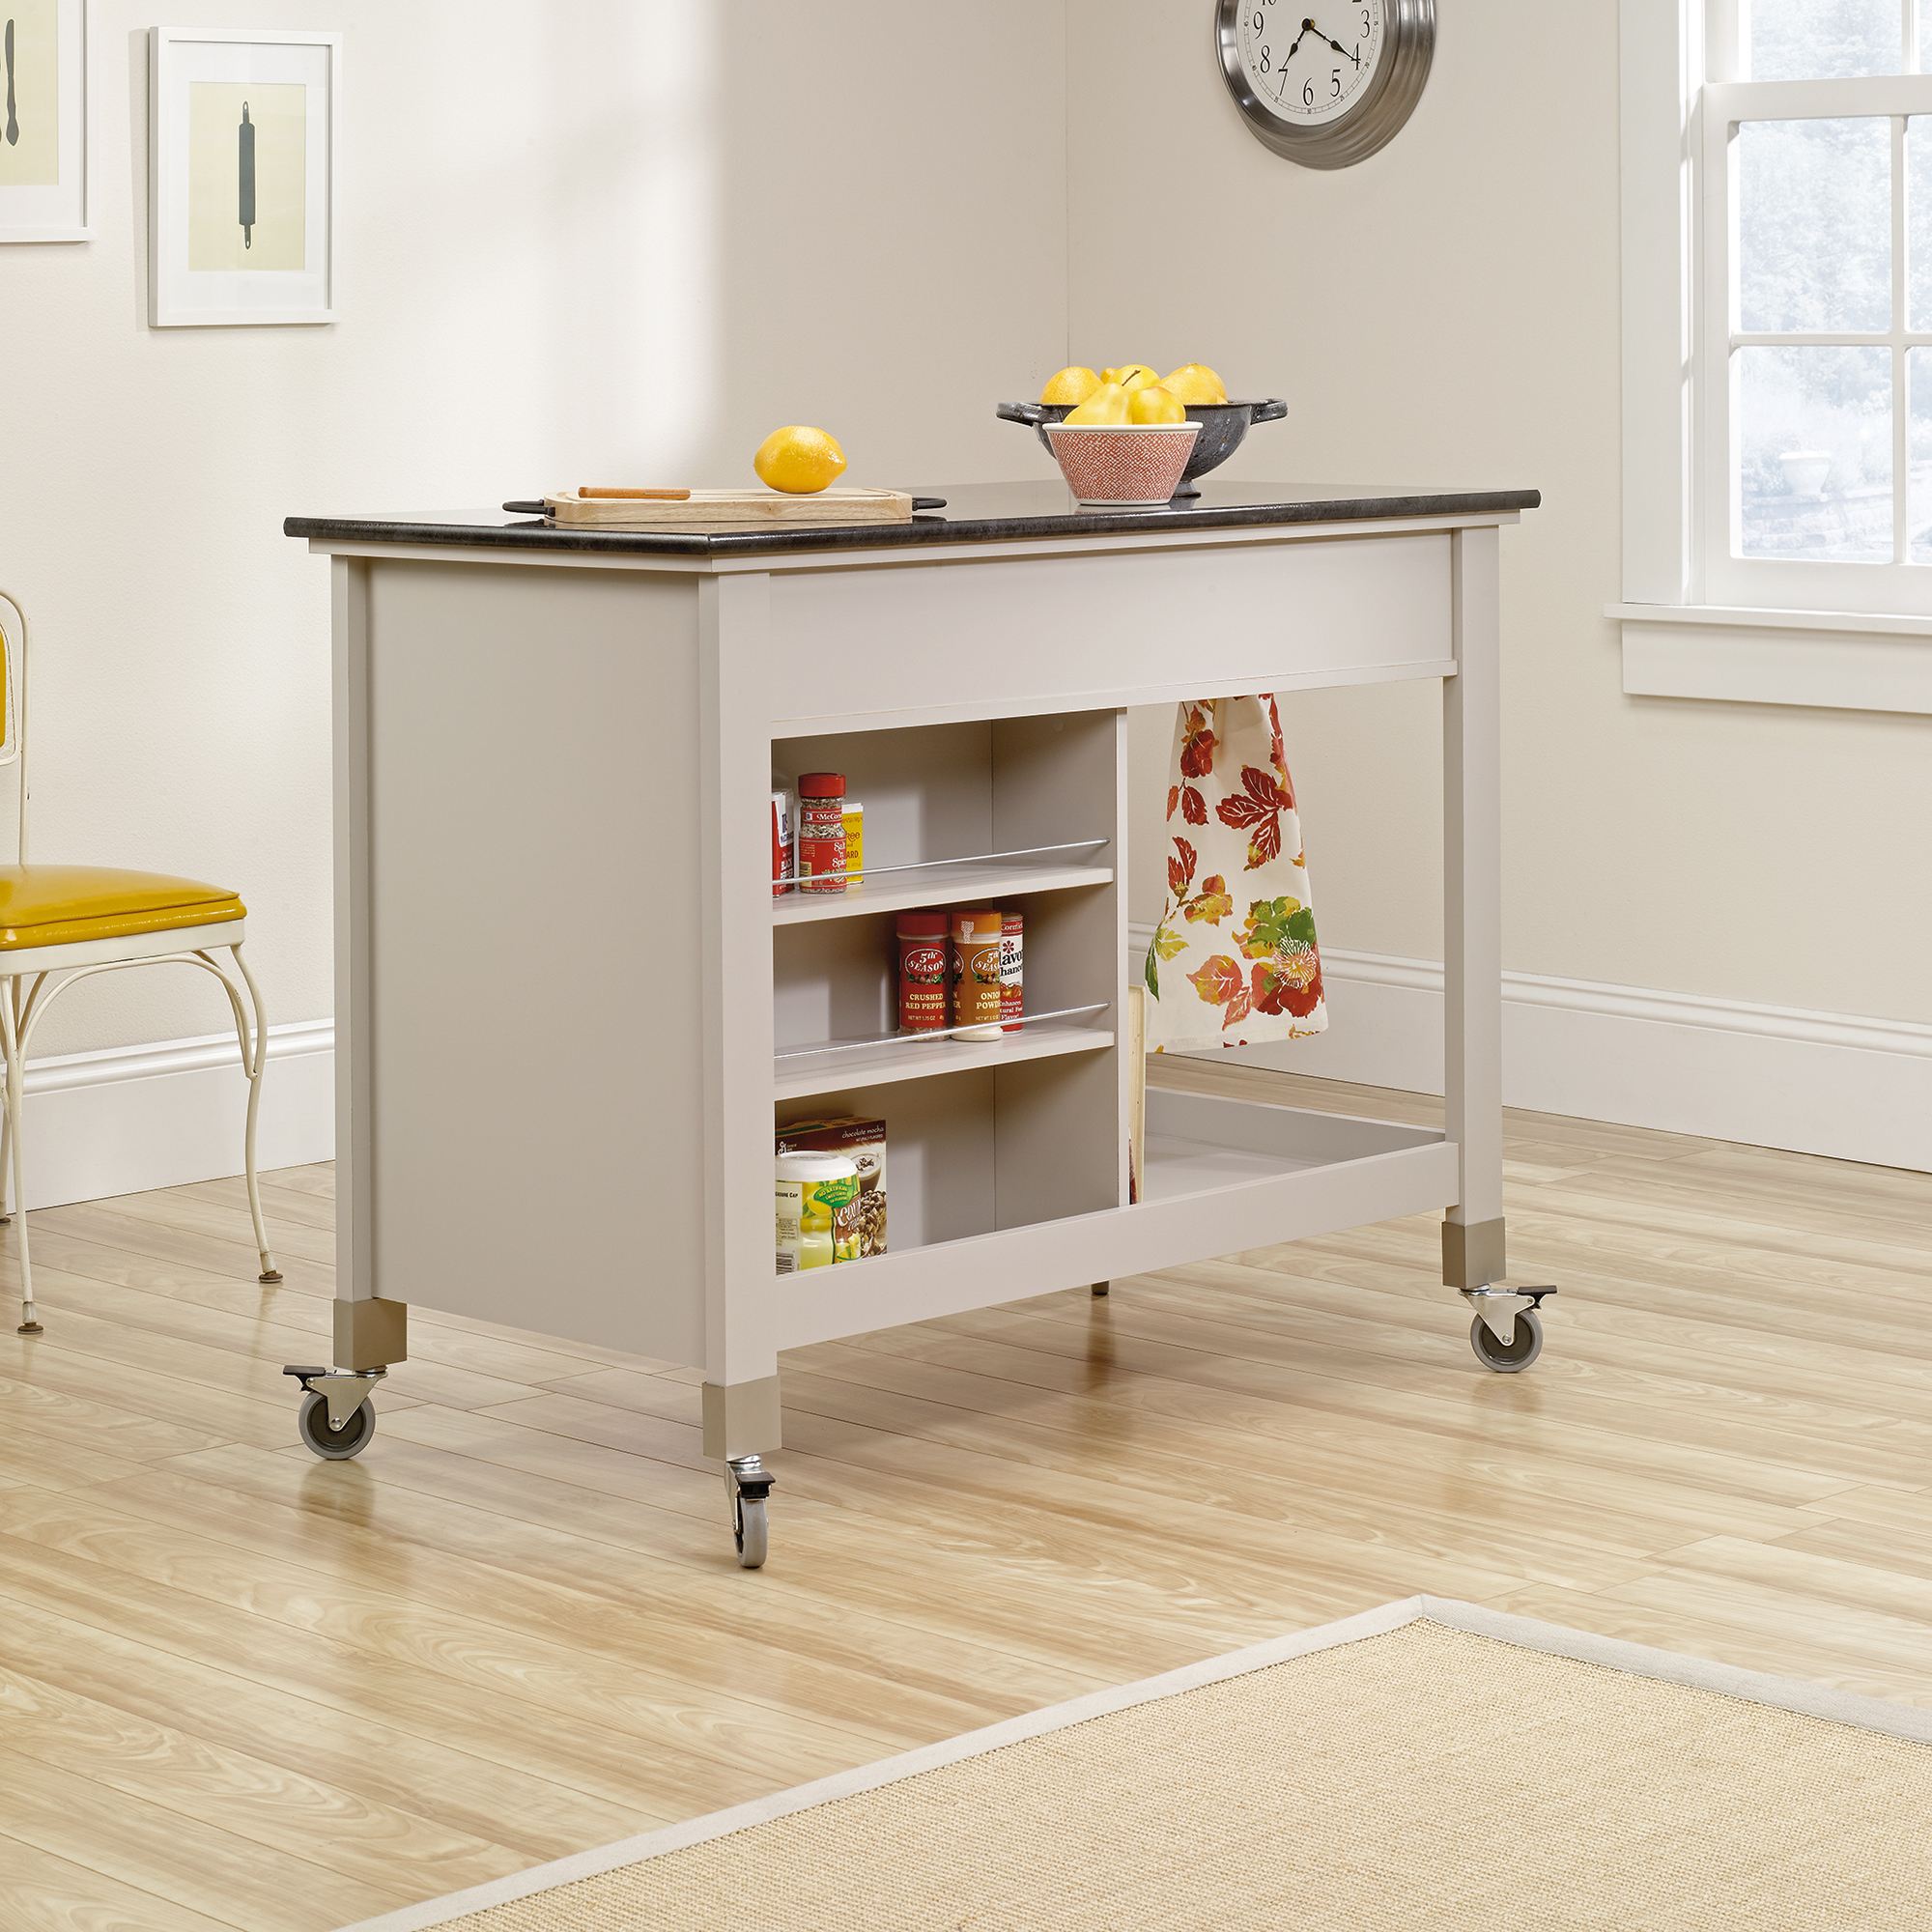 New mobile kitchen island cart zuidcsb